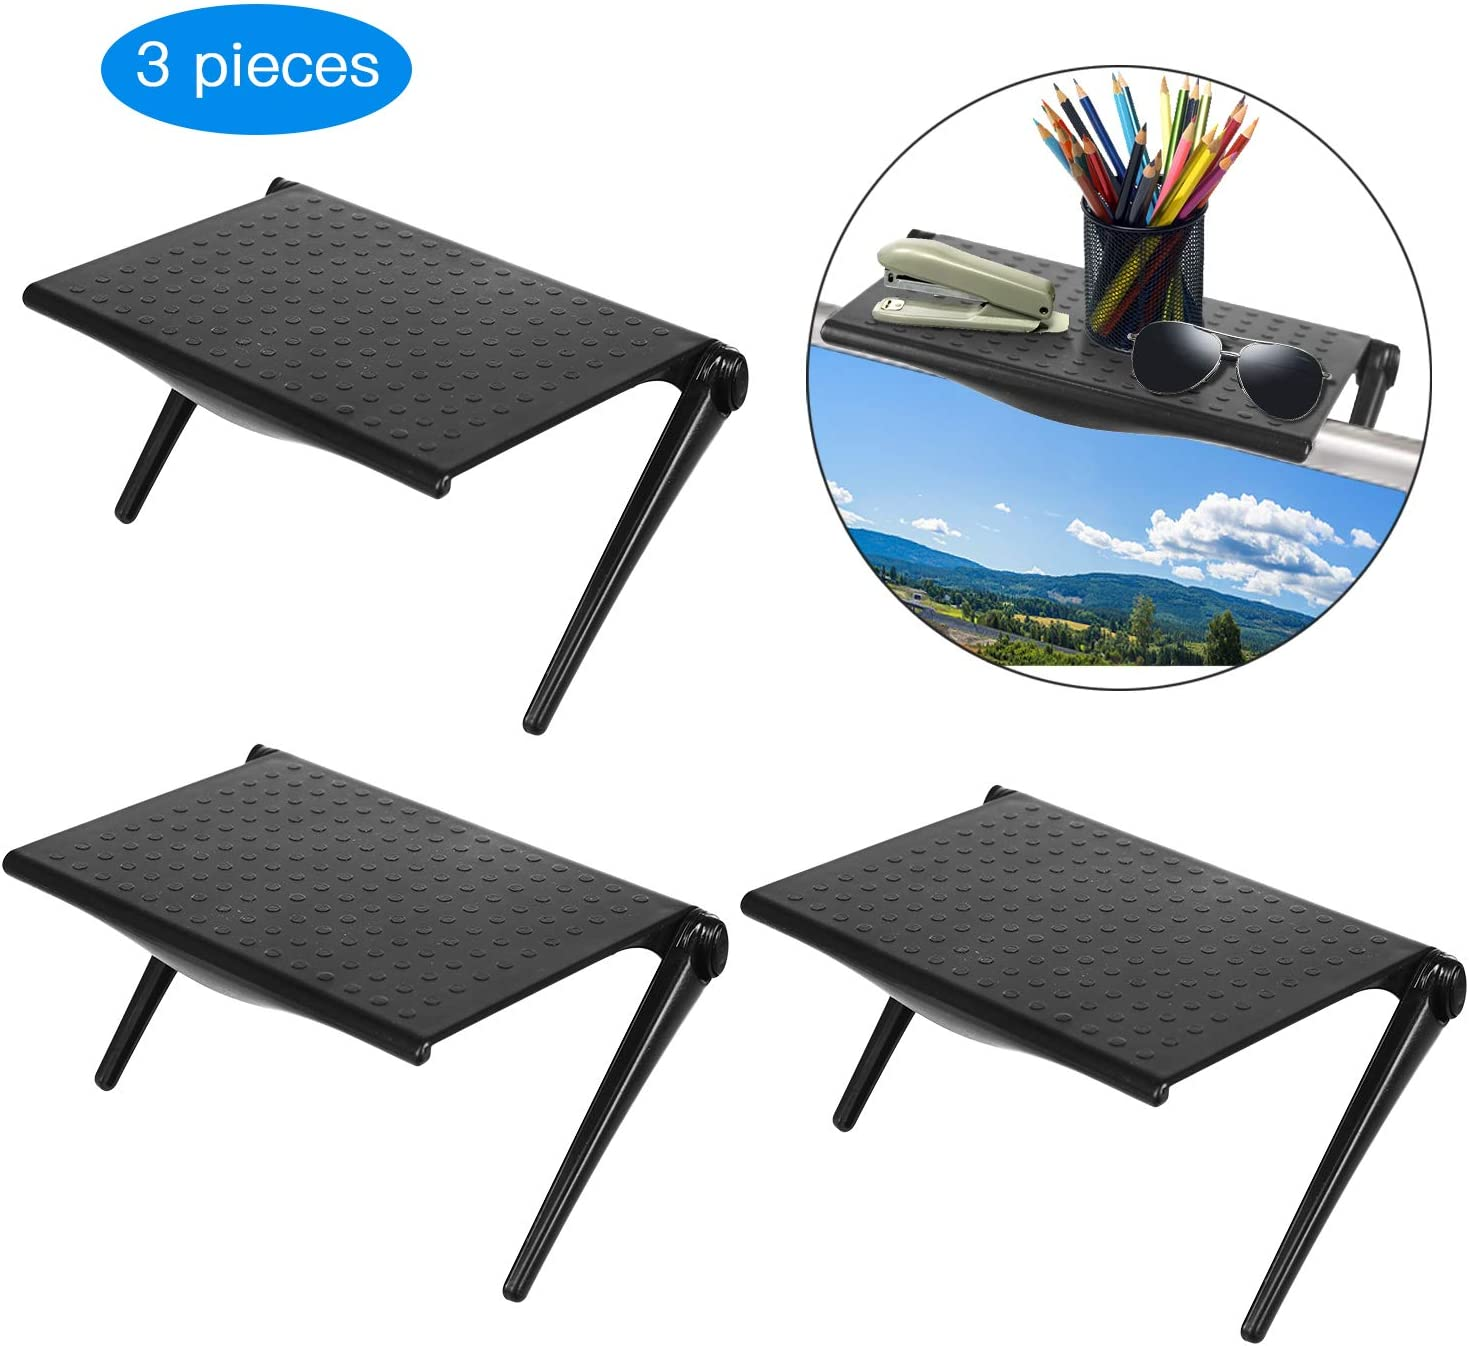 3 Pieces Screen Top Shelf Monitor Adjustable Screen Shelf TV Top Storage Bracket Flat Panel Mount for Streaming Devices, Media Boxes, Speakers and Home Decor